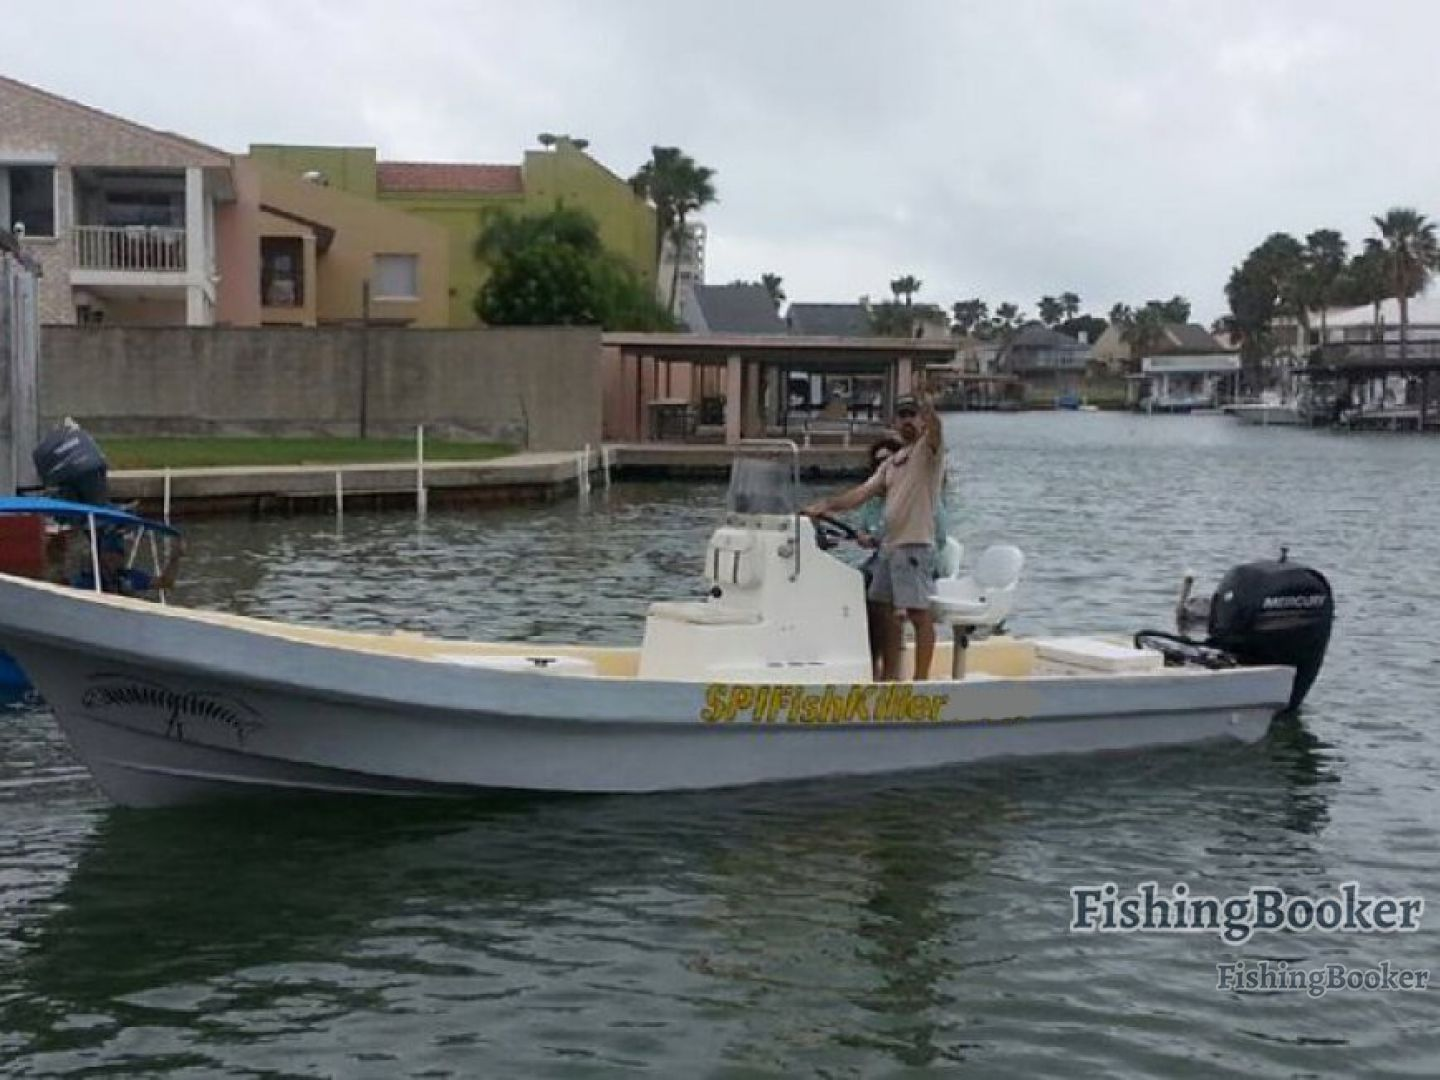 Spi fish killer charters south padre island texas for South padre island fishing